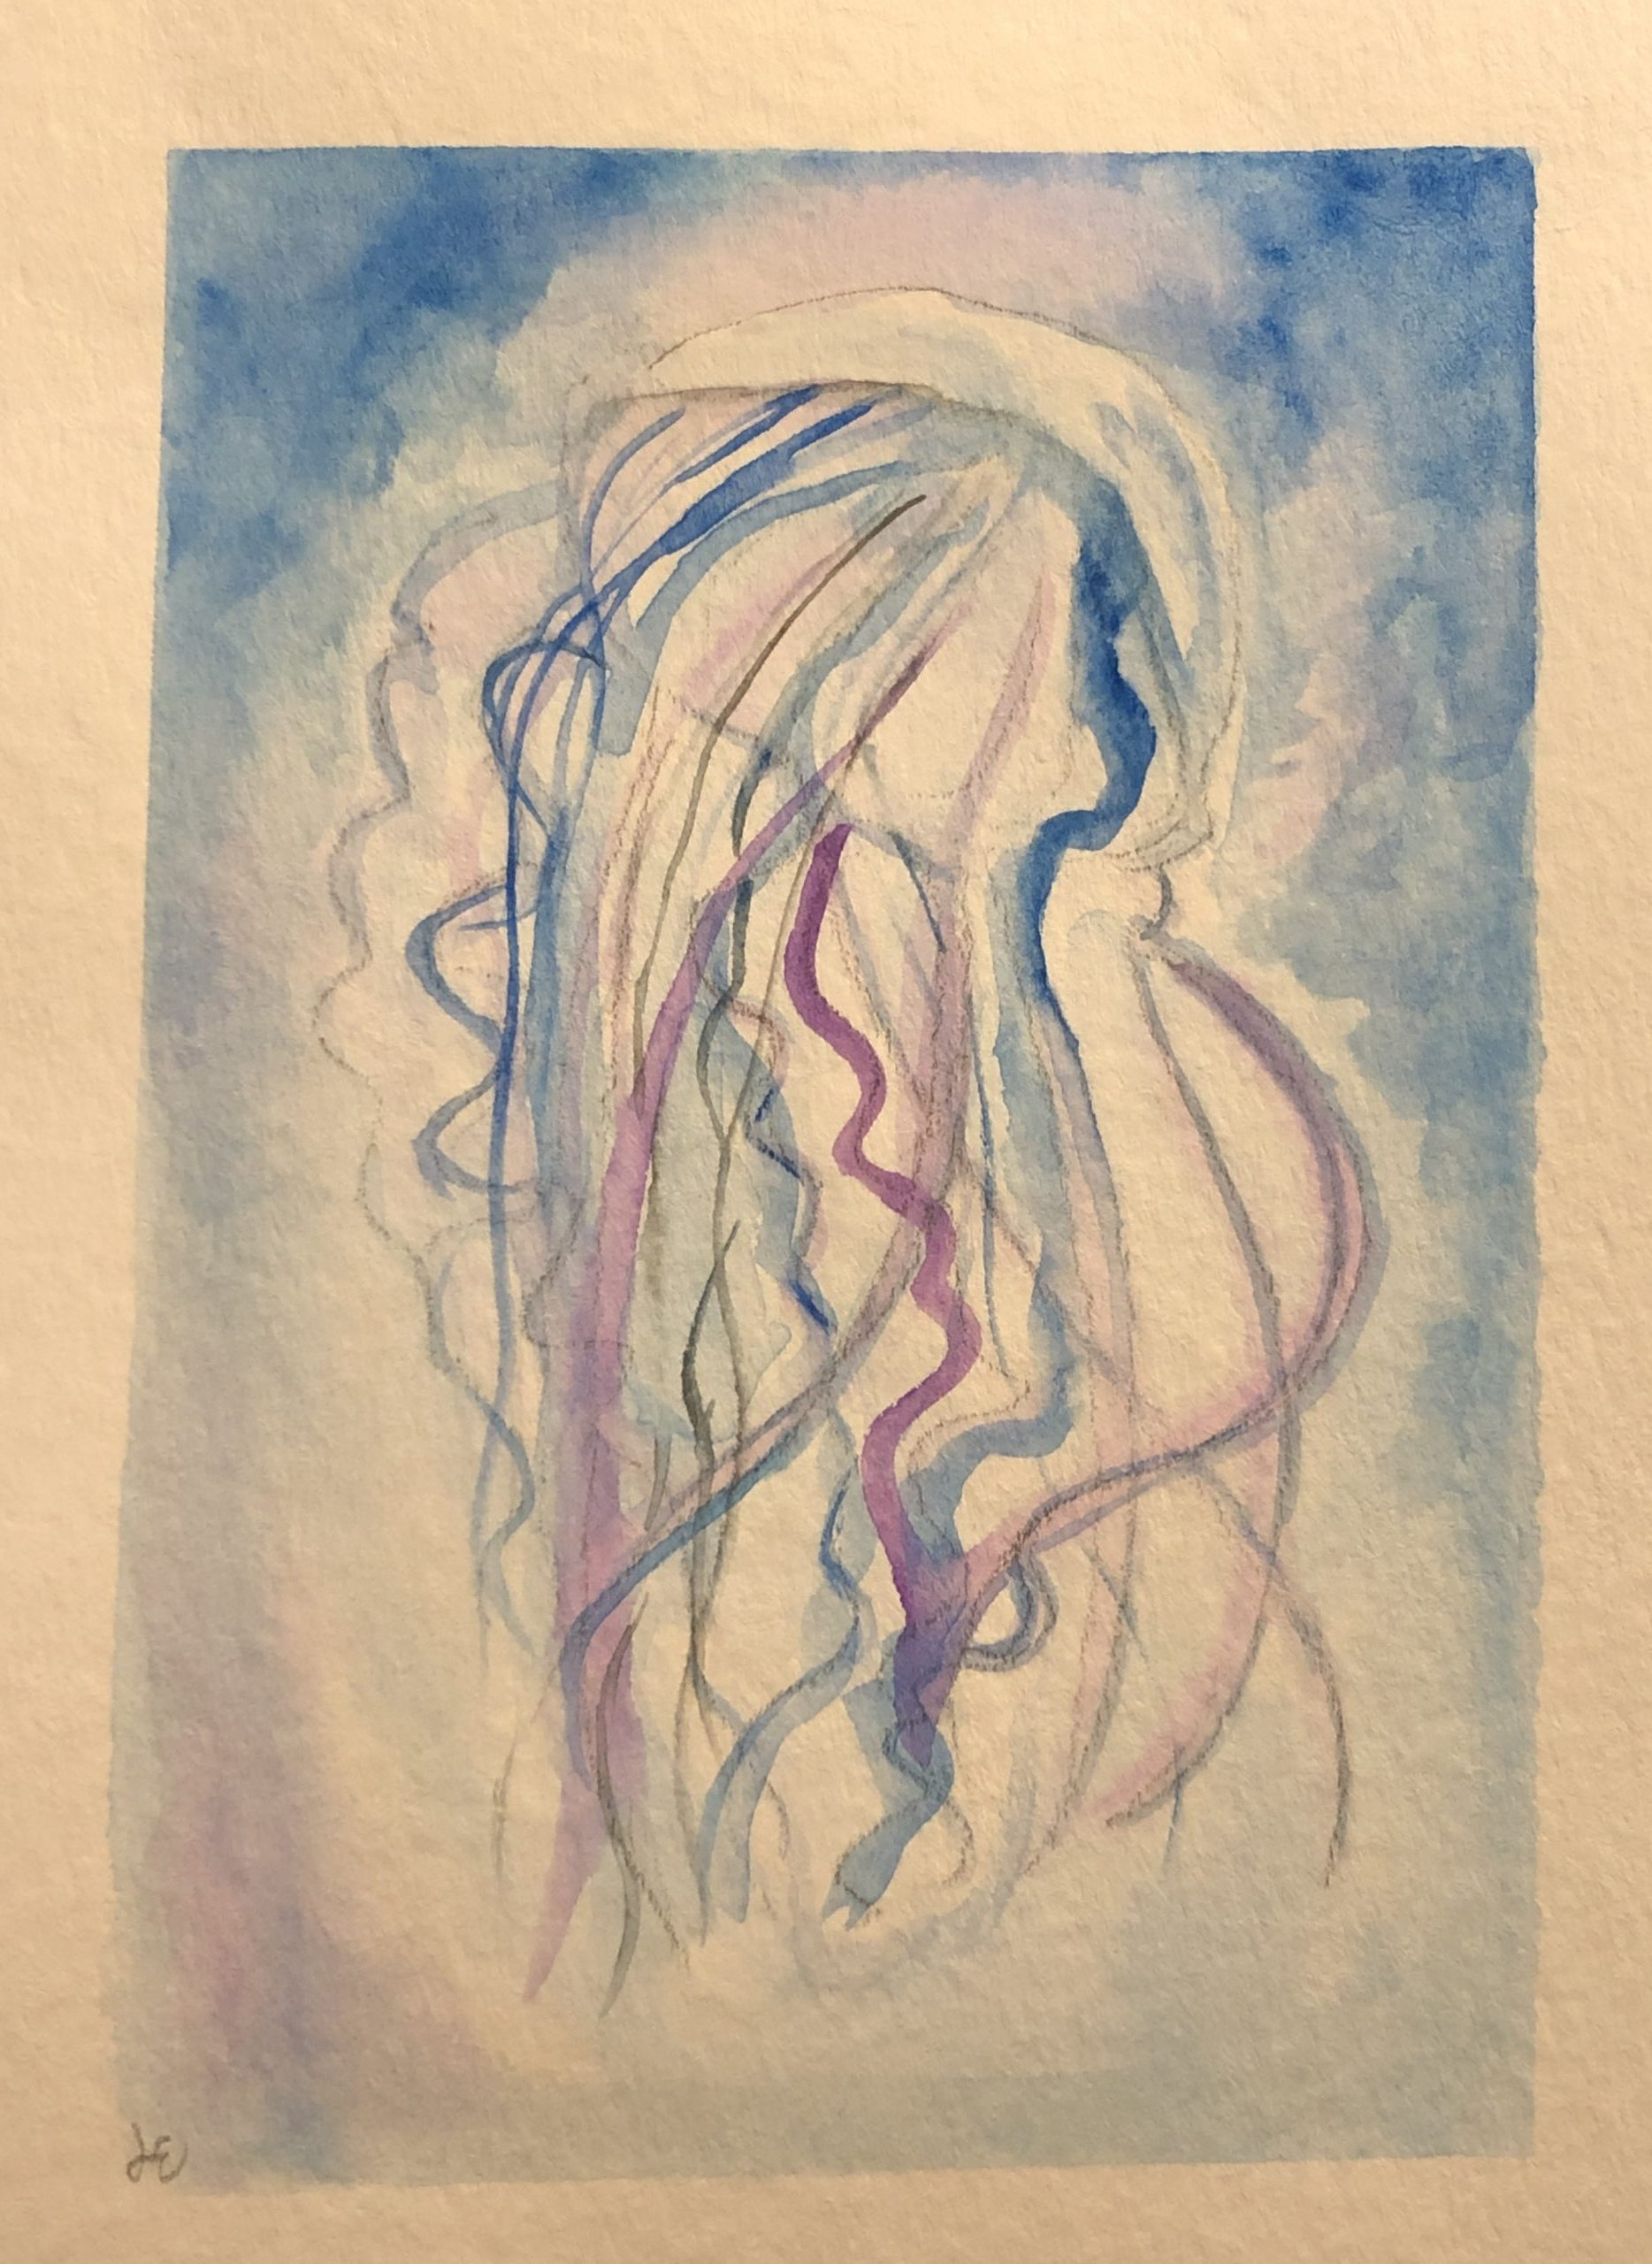 Jelly fish watercolor painting